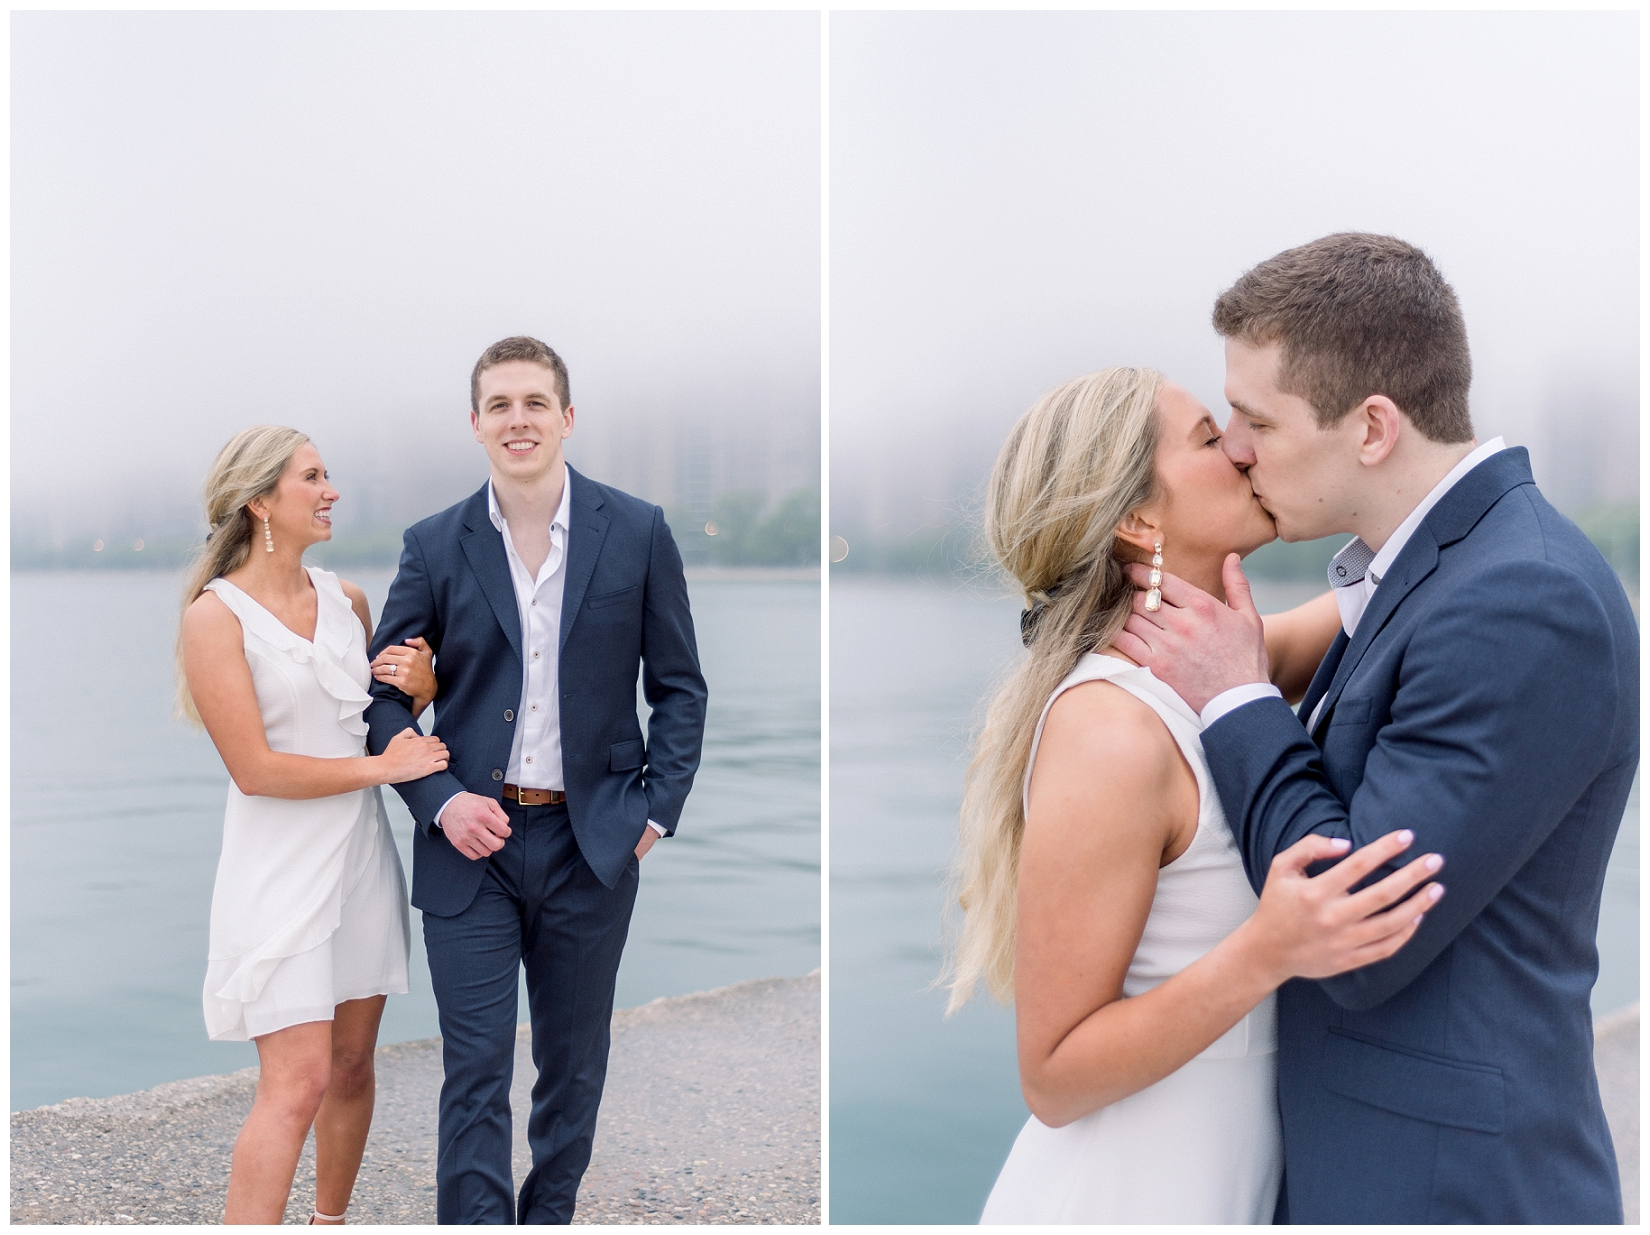 north avenue beach engagement session 4.jpg